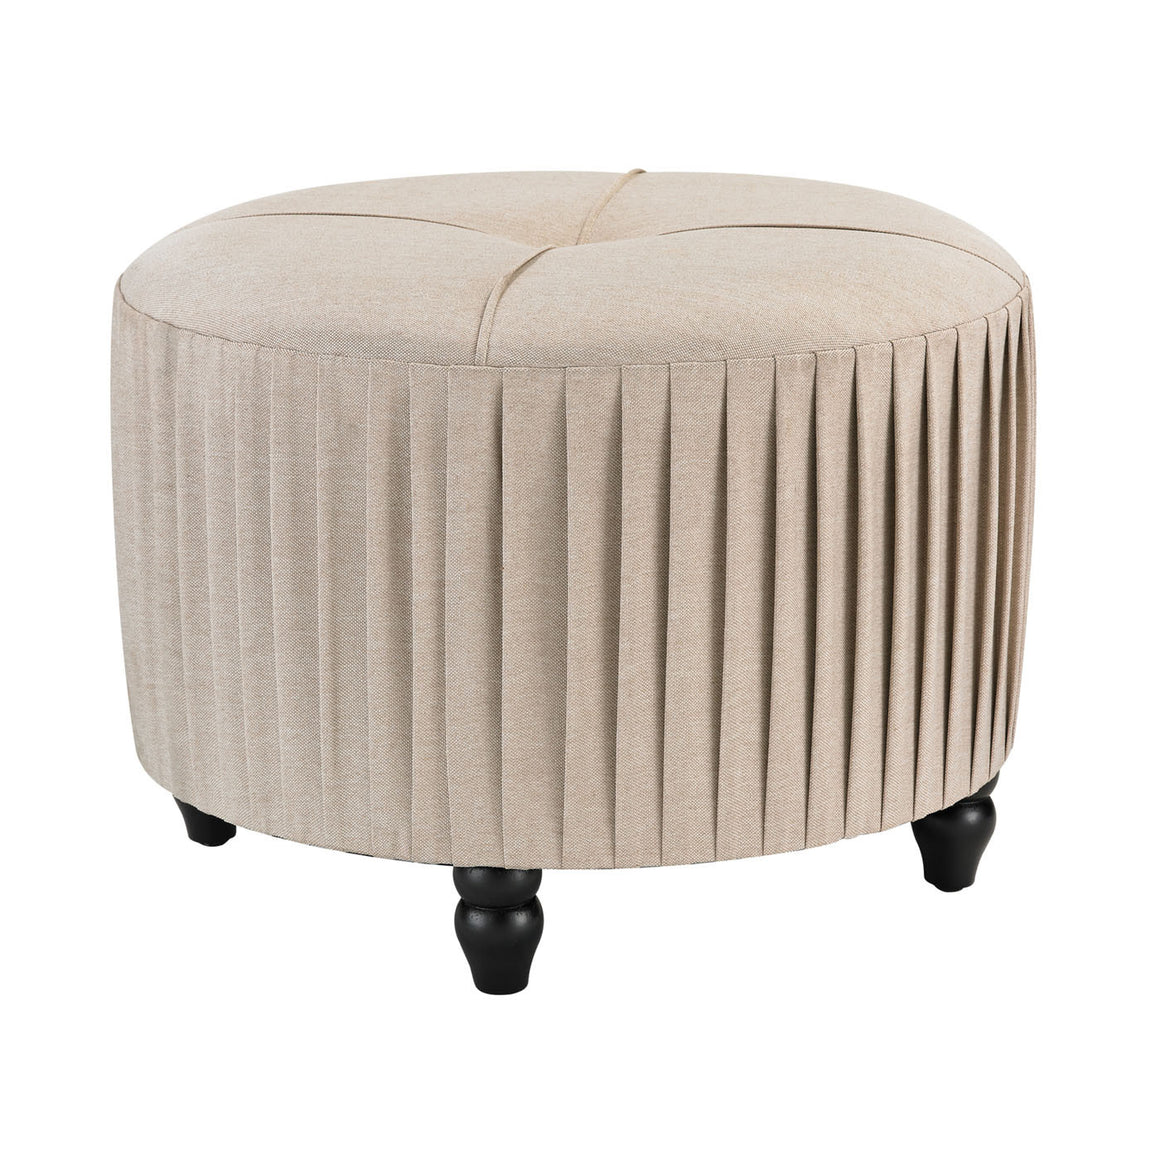 Pleated Ottoman in Natural Linen 180-012 by Sterling